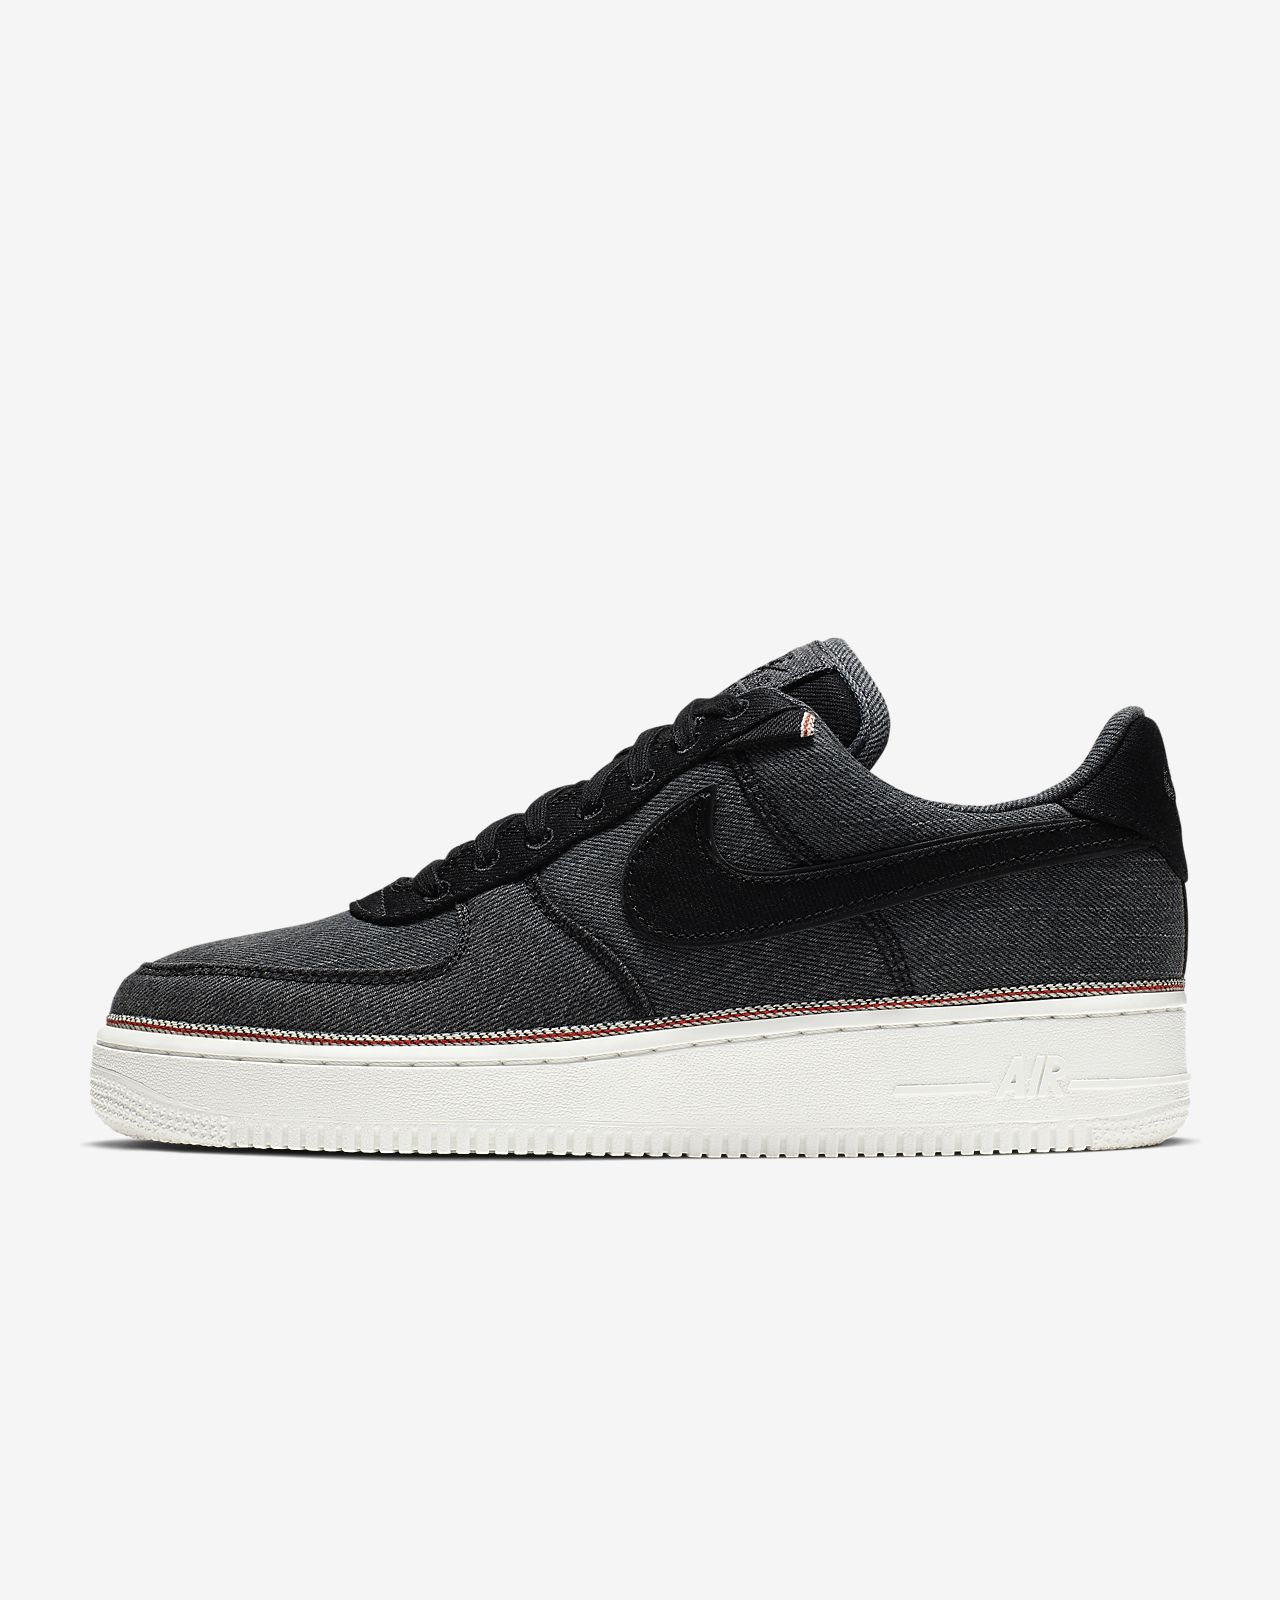 3d33a1e73b Nike Air Force 1 '07 Premium Men's Shoe